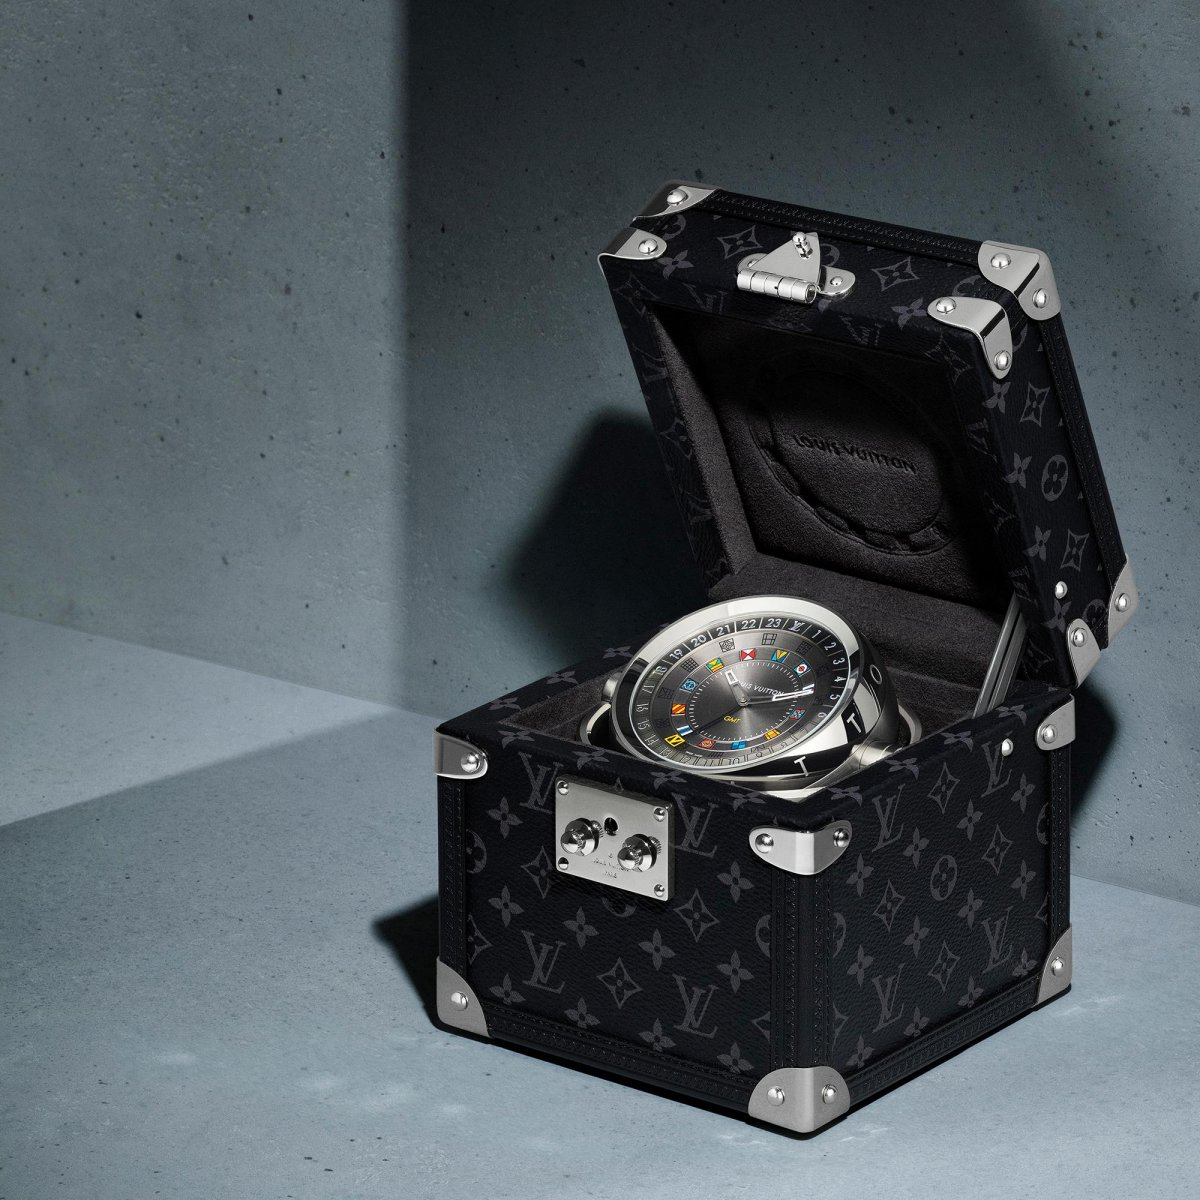 The Louis Vuitton Trunk Table Clock to represent our Father's Day gift guide.